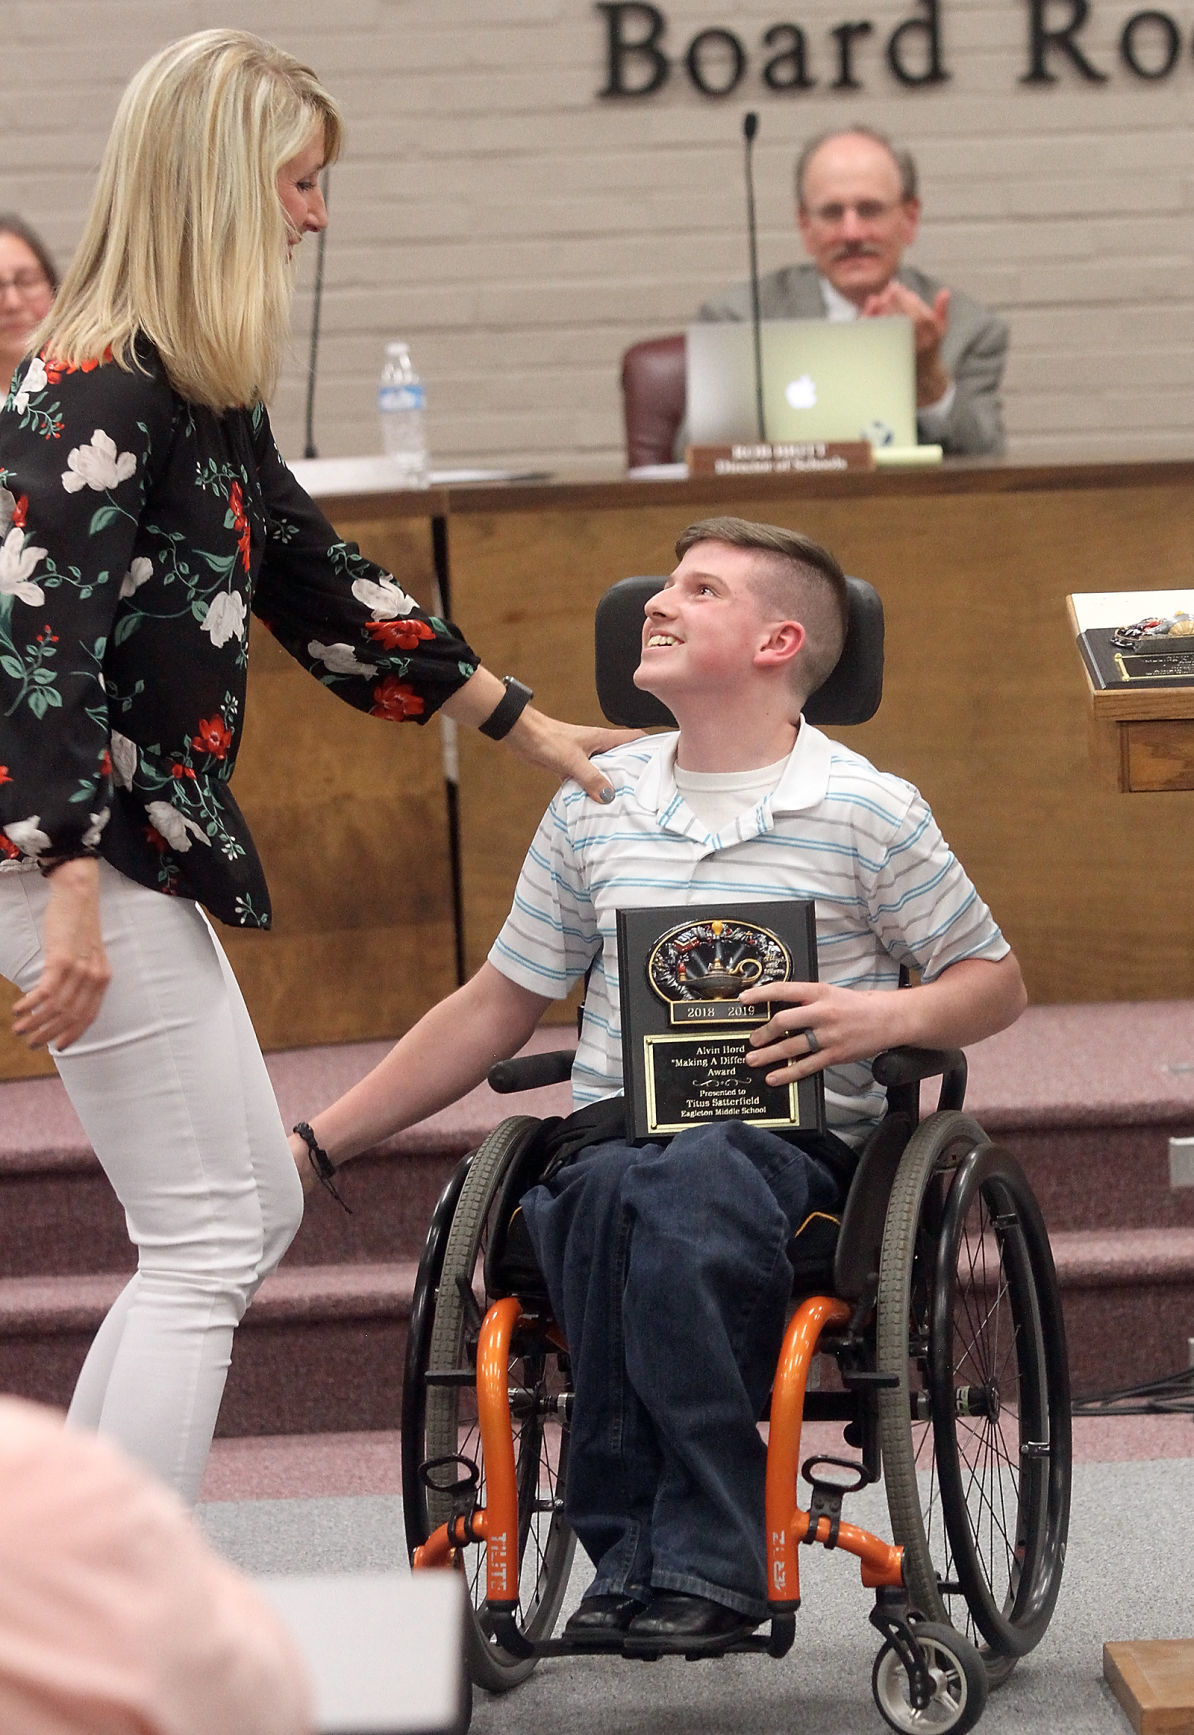 Eagleton Middle School's Titus Satterfield receives Alvin Hoard Making a Difference Award